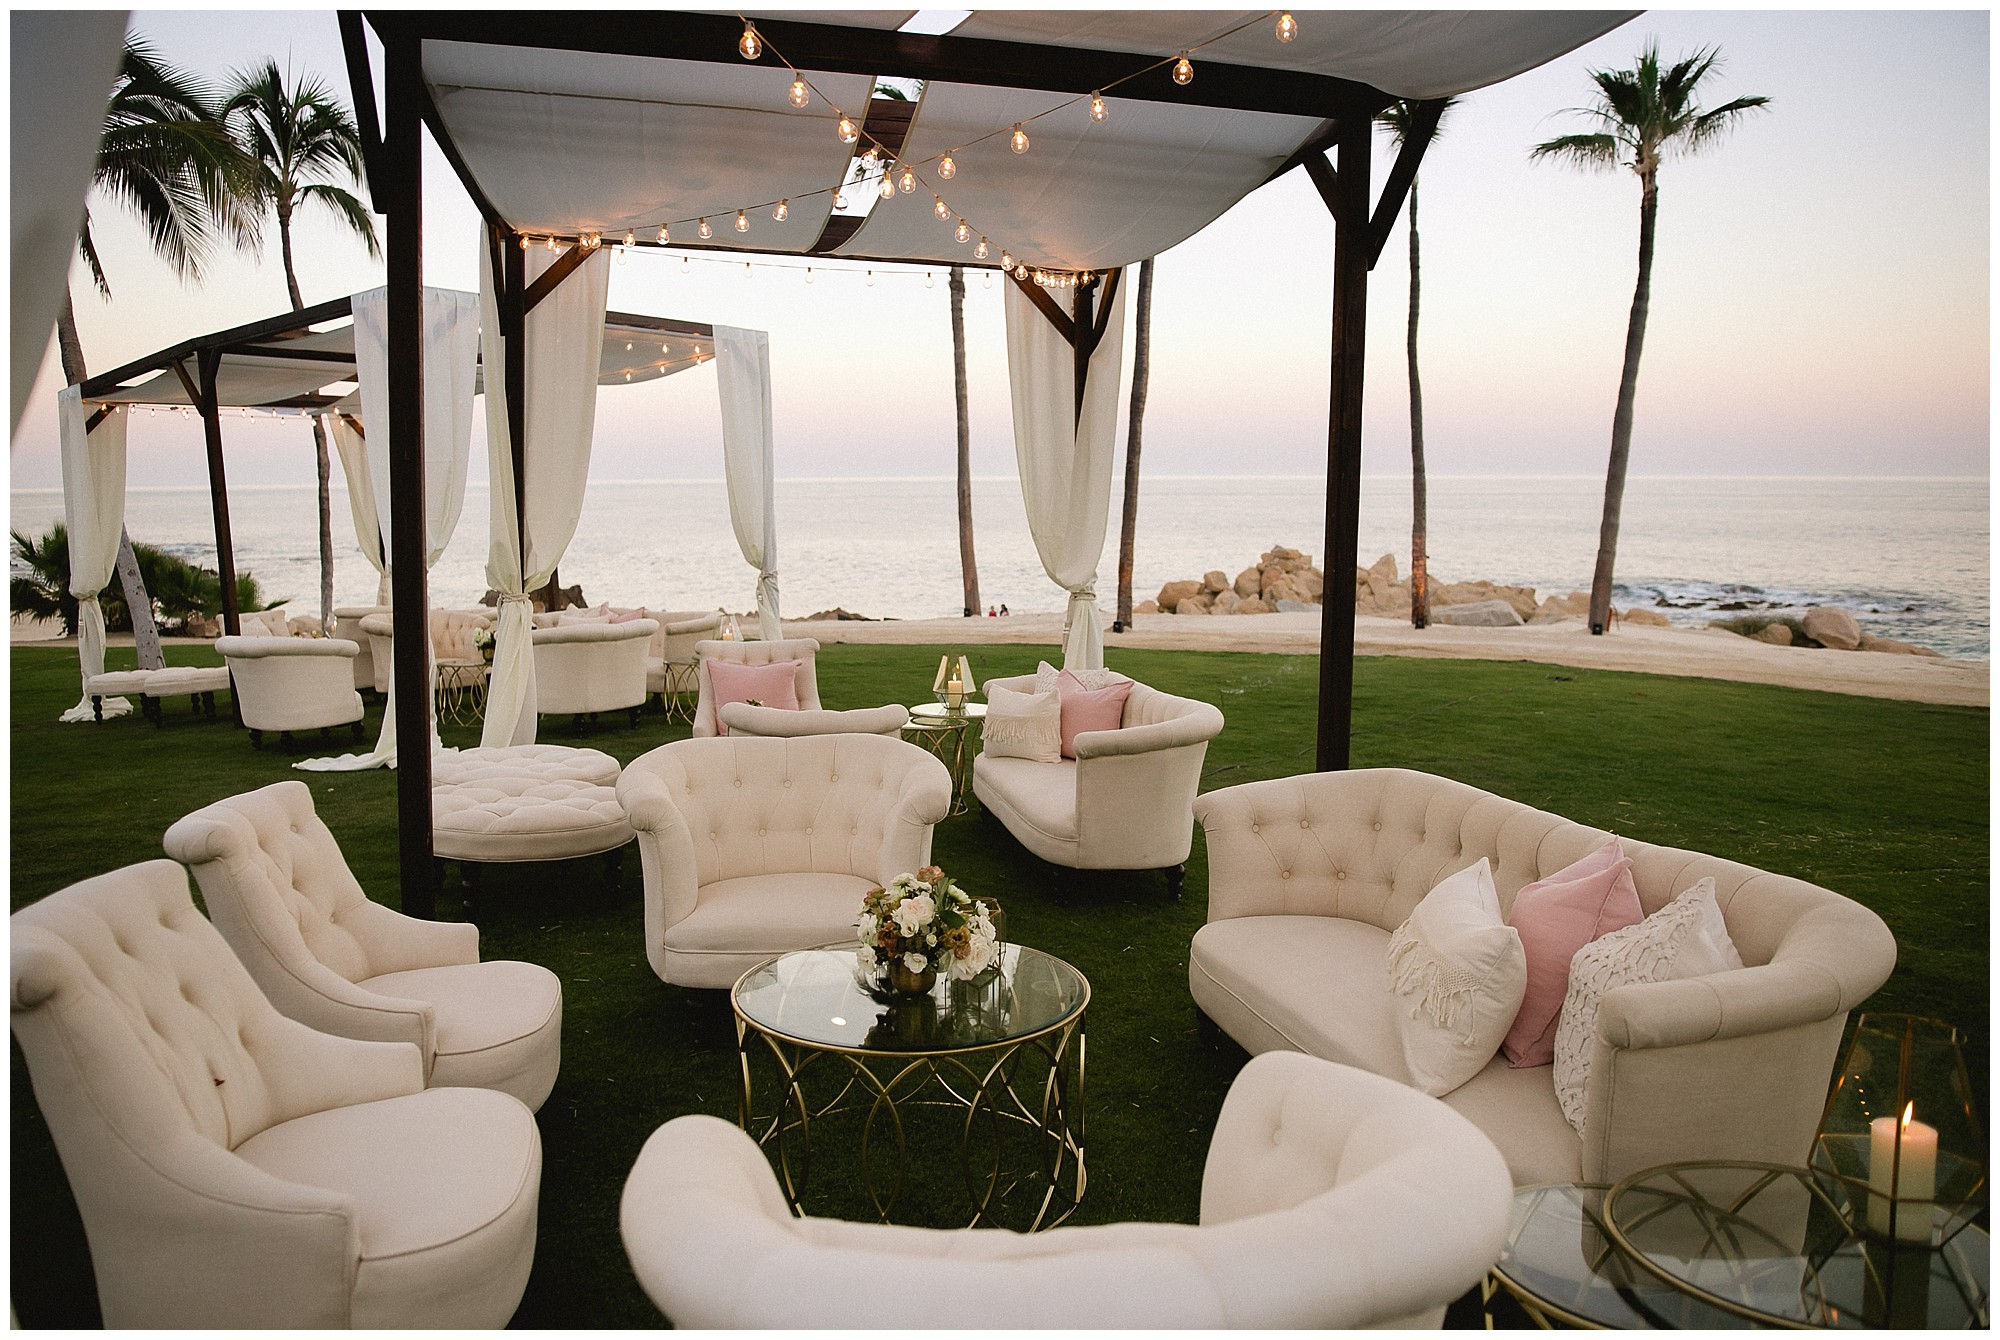 breath-taking lounging area at a One&Only Palmilla wedding